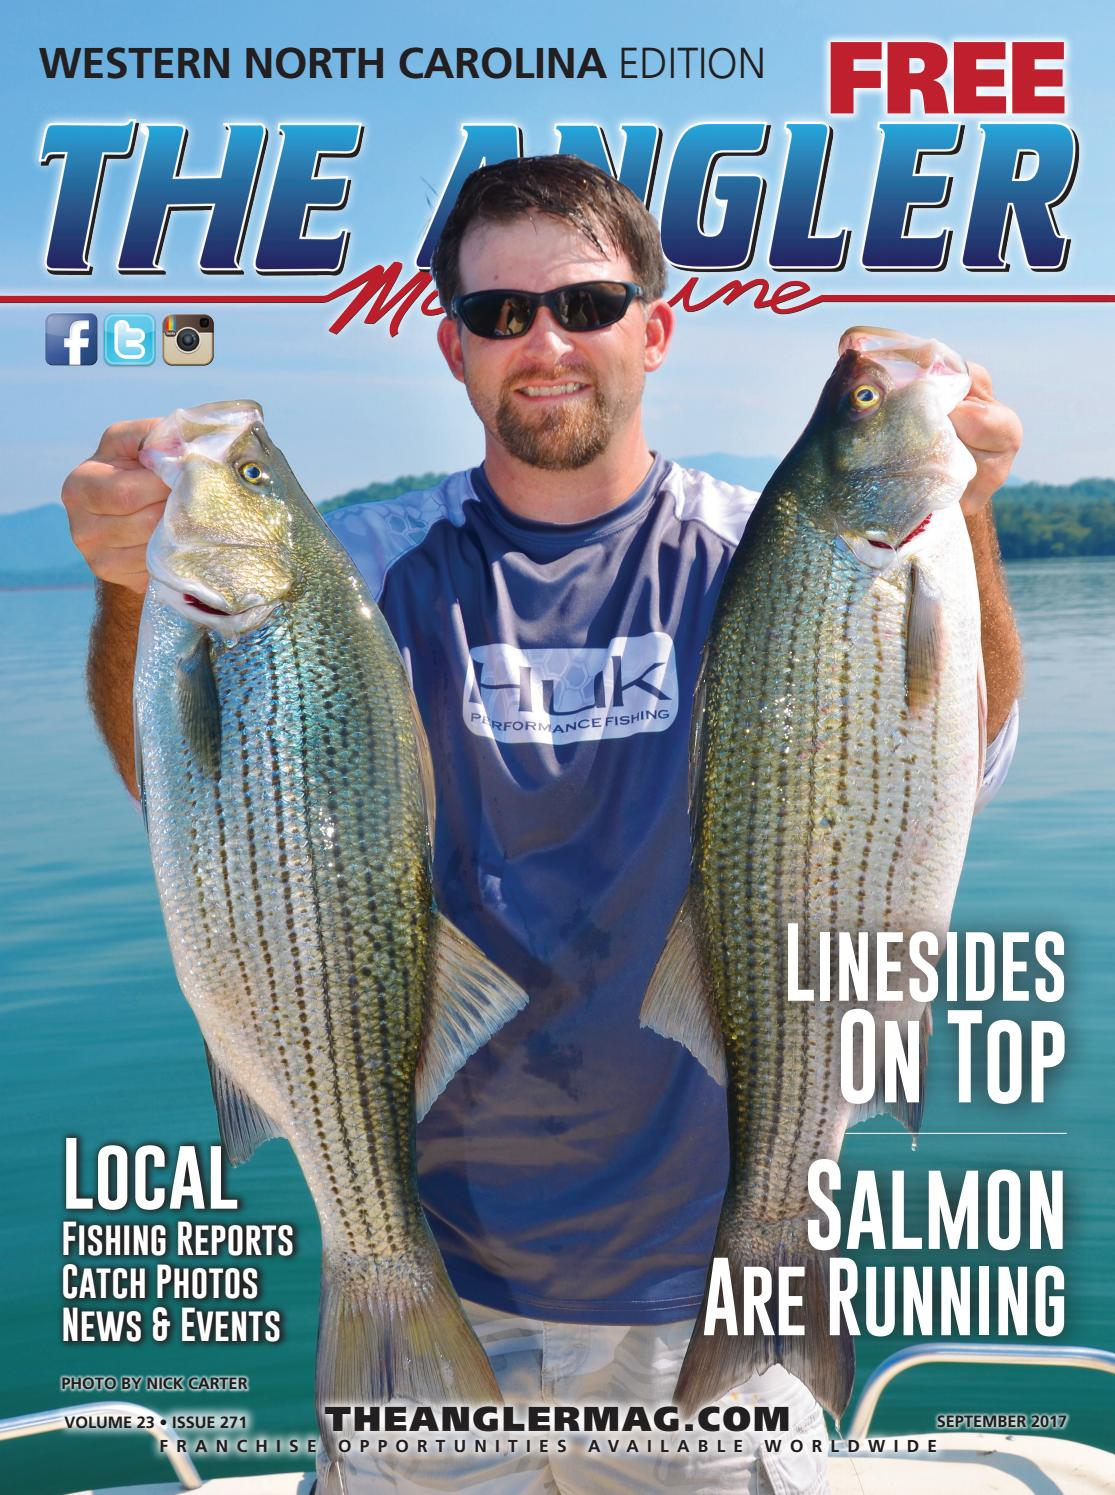 ce3a5a448f Coastal Angler Magazine - September   Western North Carolina by ...